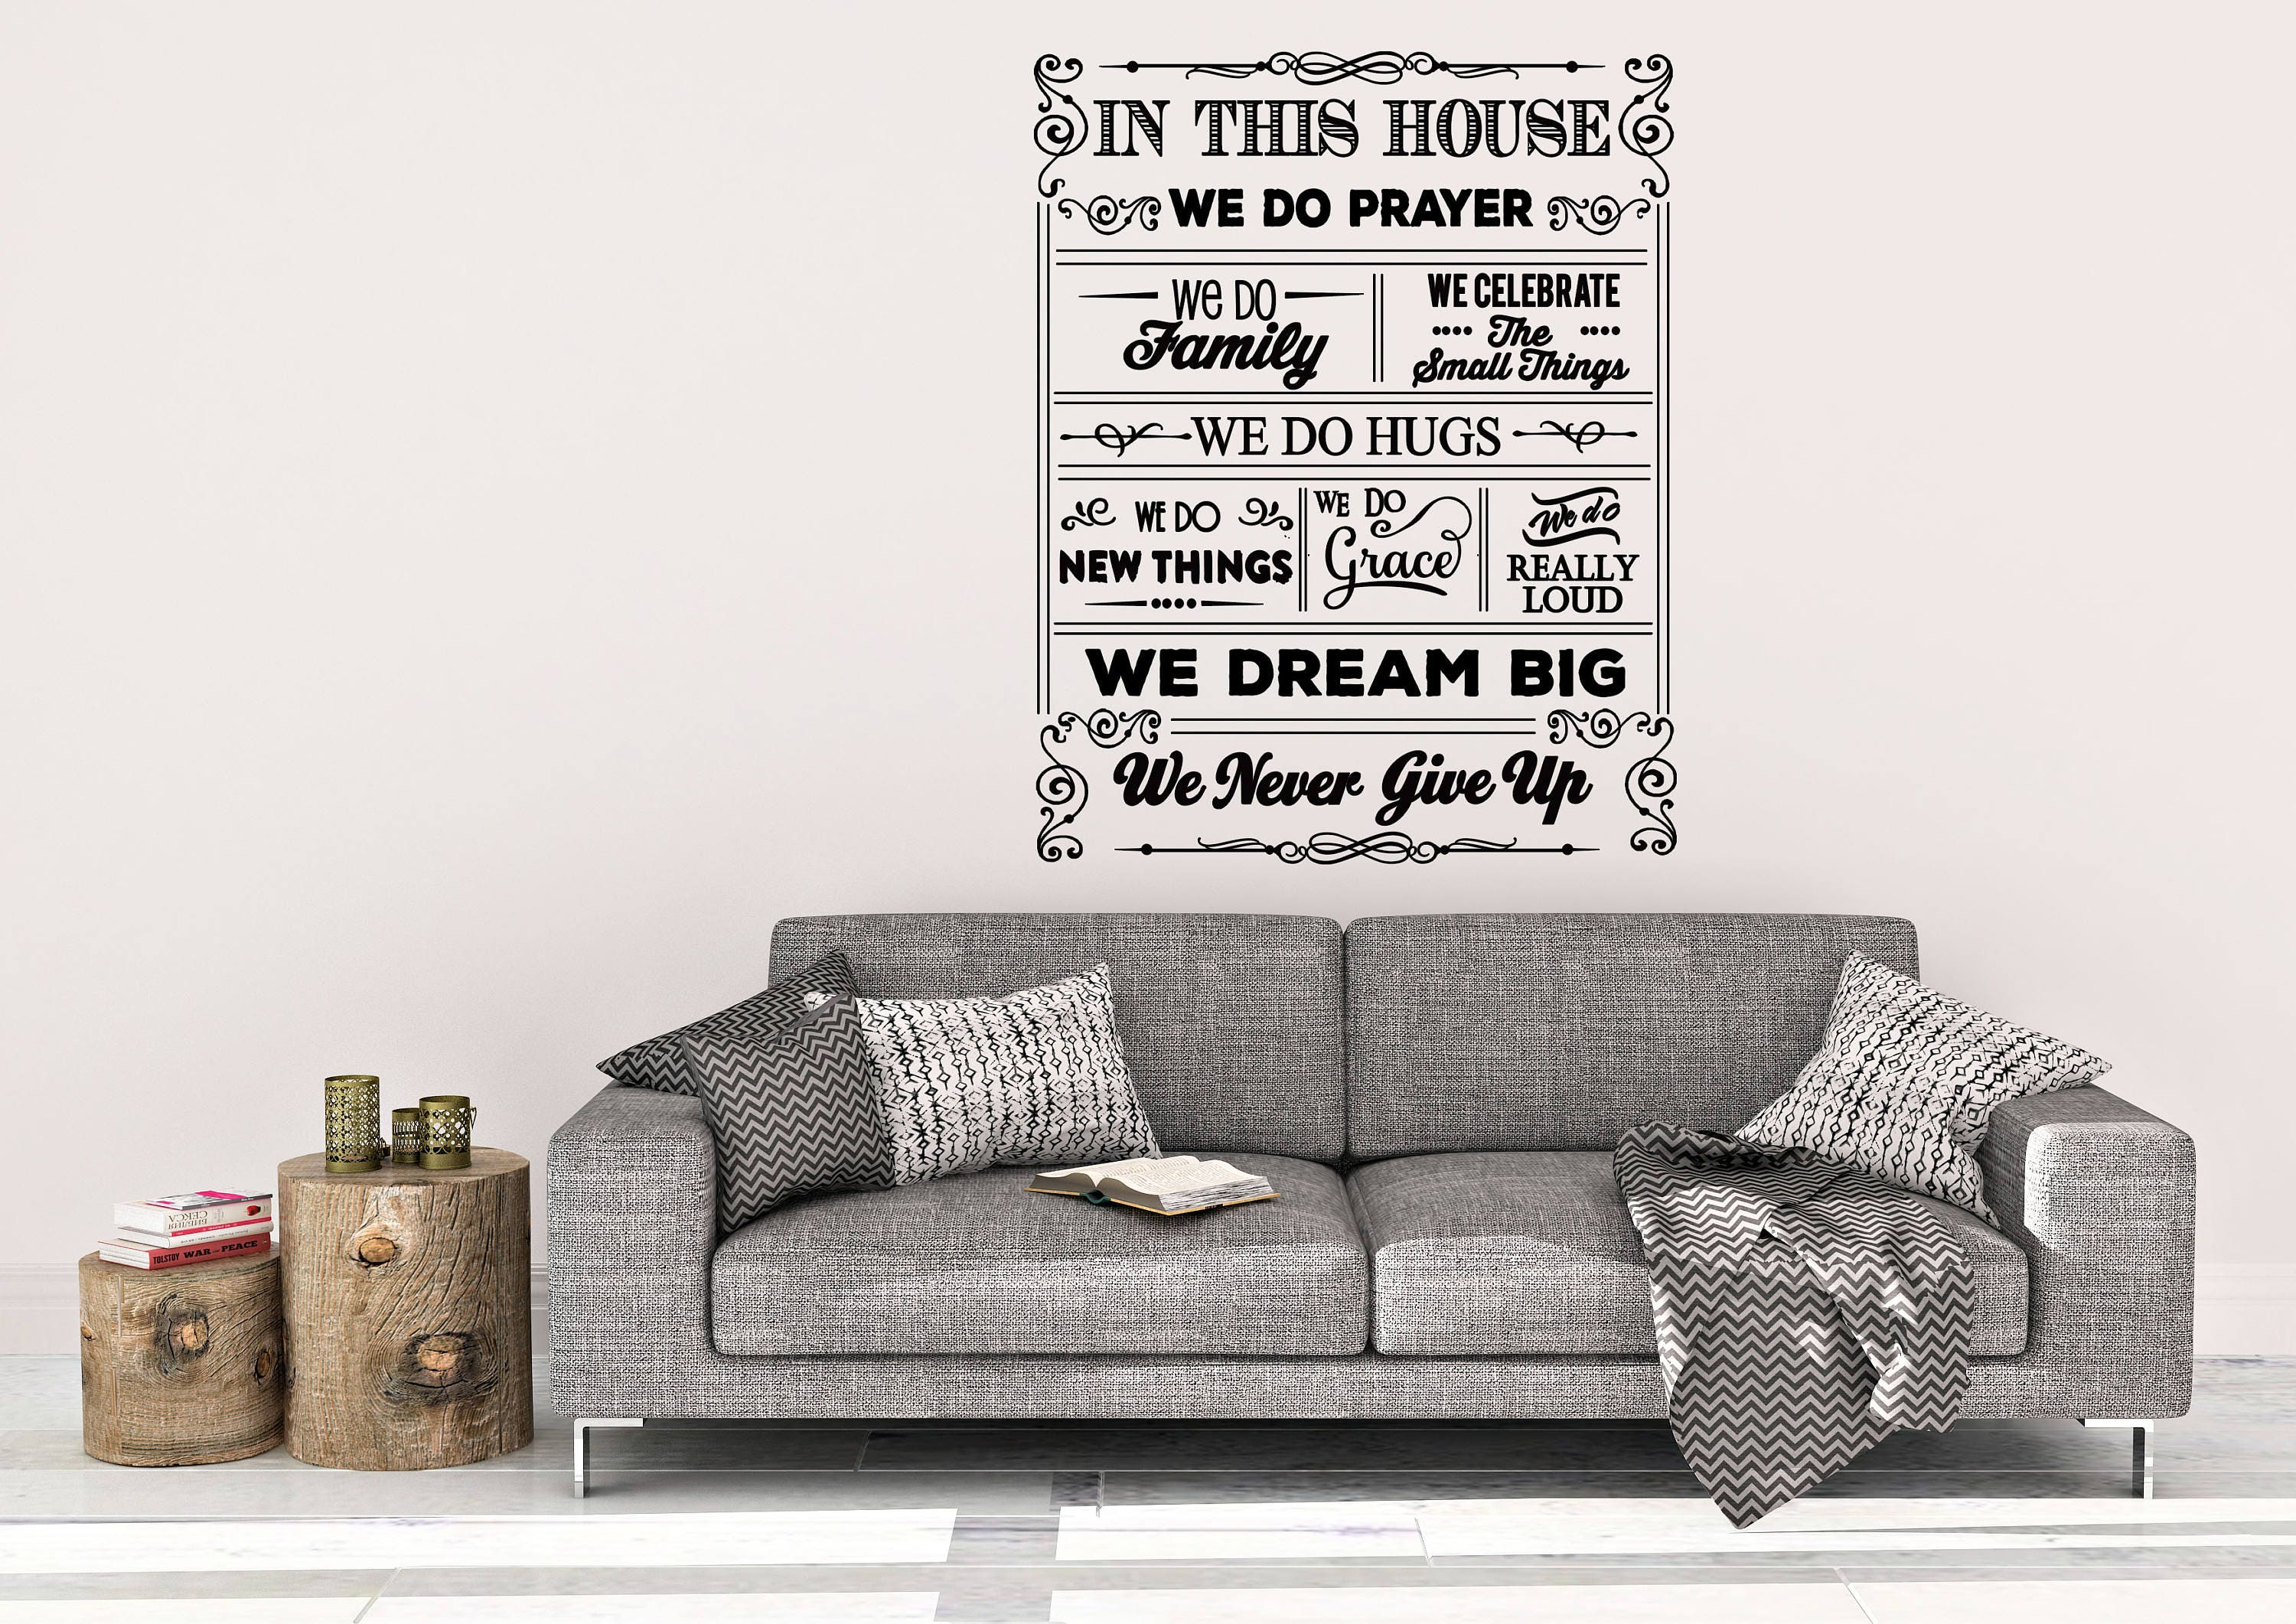 In This House Wall Decal House Decal Home Wall Decal Wall